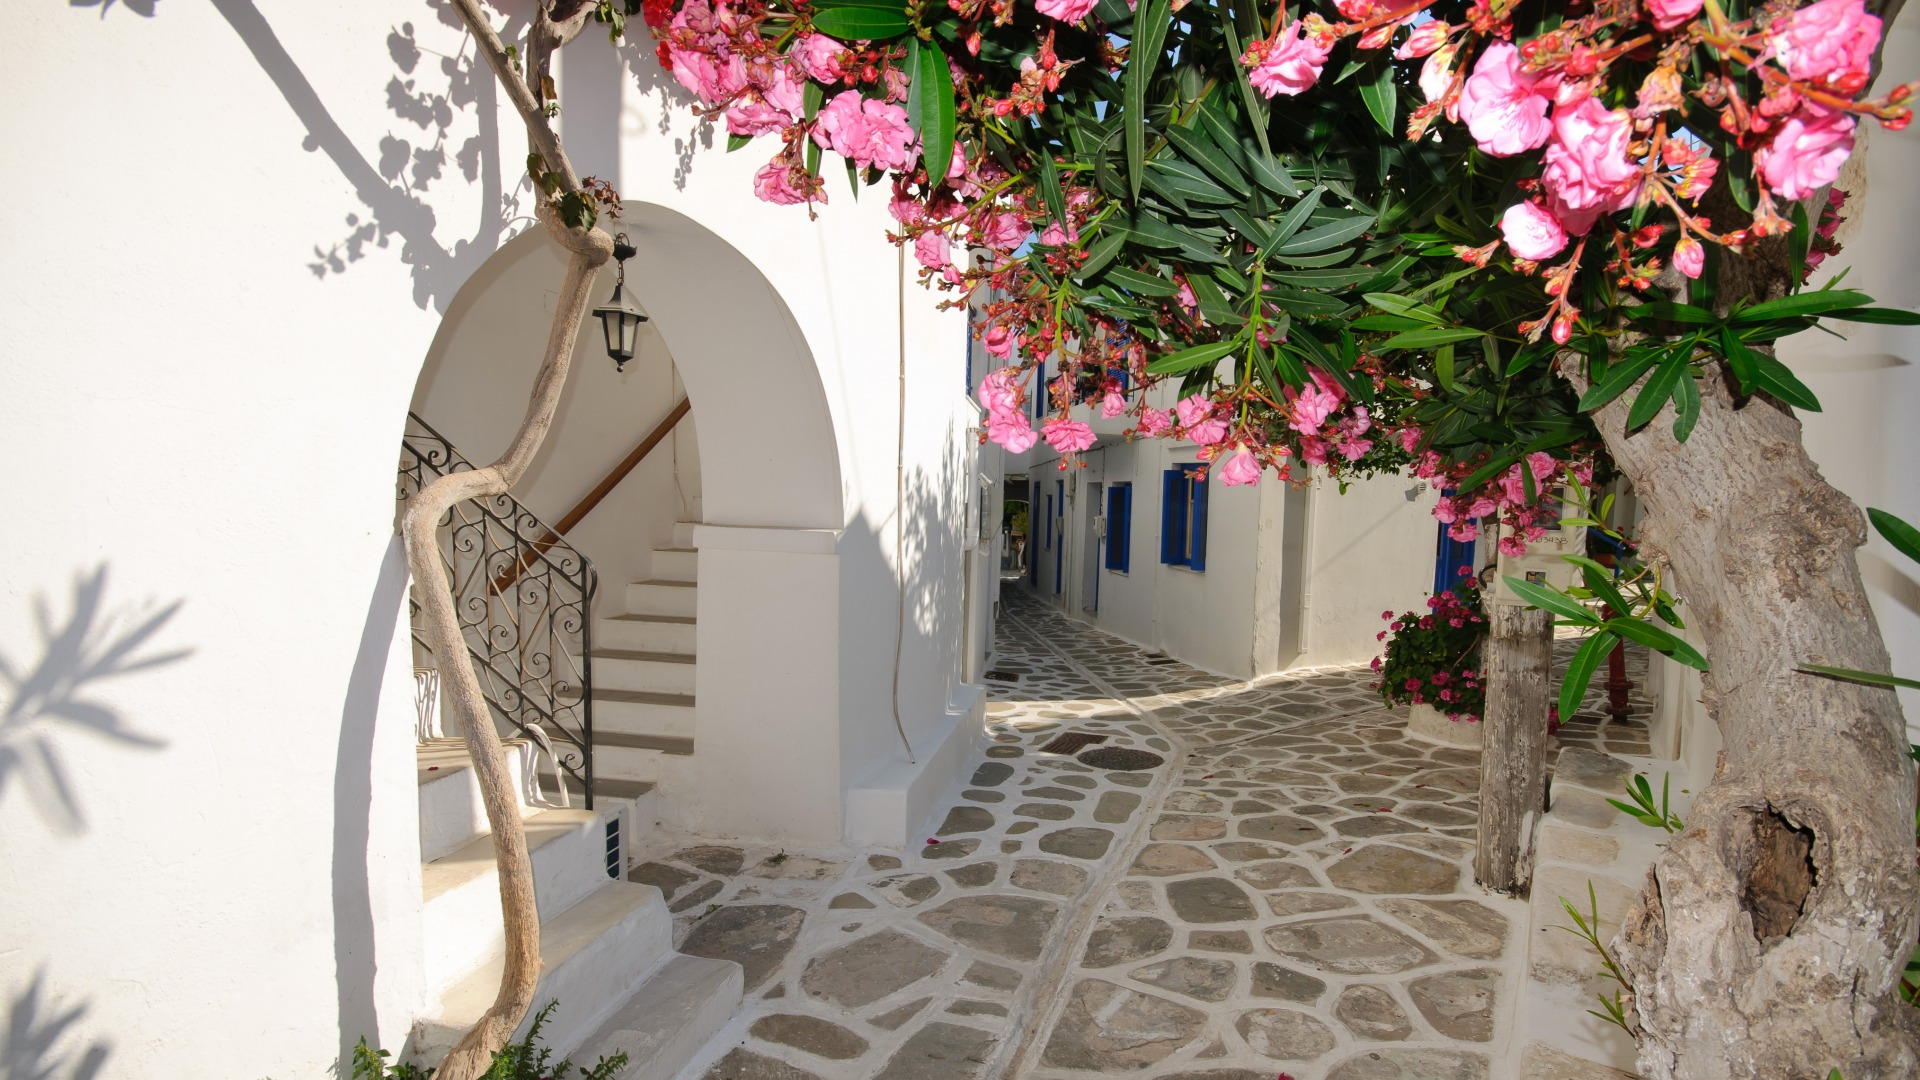 Download-flowers-home-Santorini-Greece-section-Resolution-1920x1080-wallpaper-wp3605111